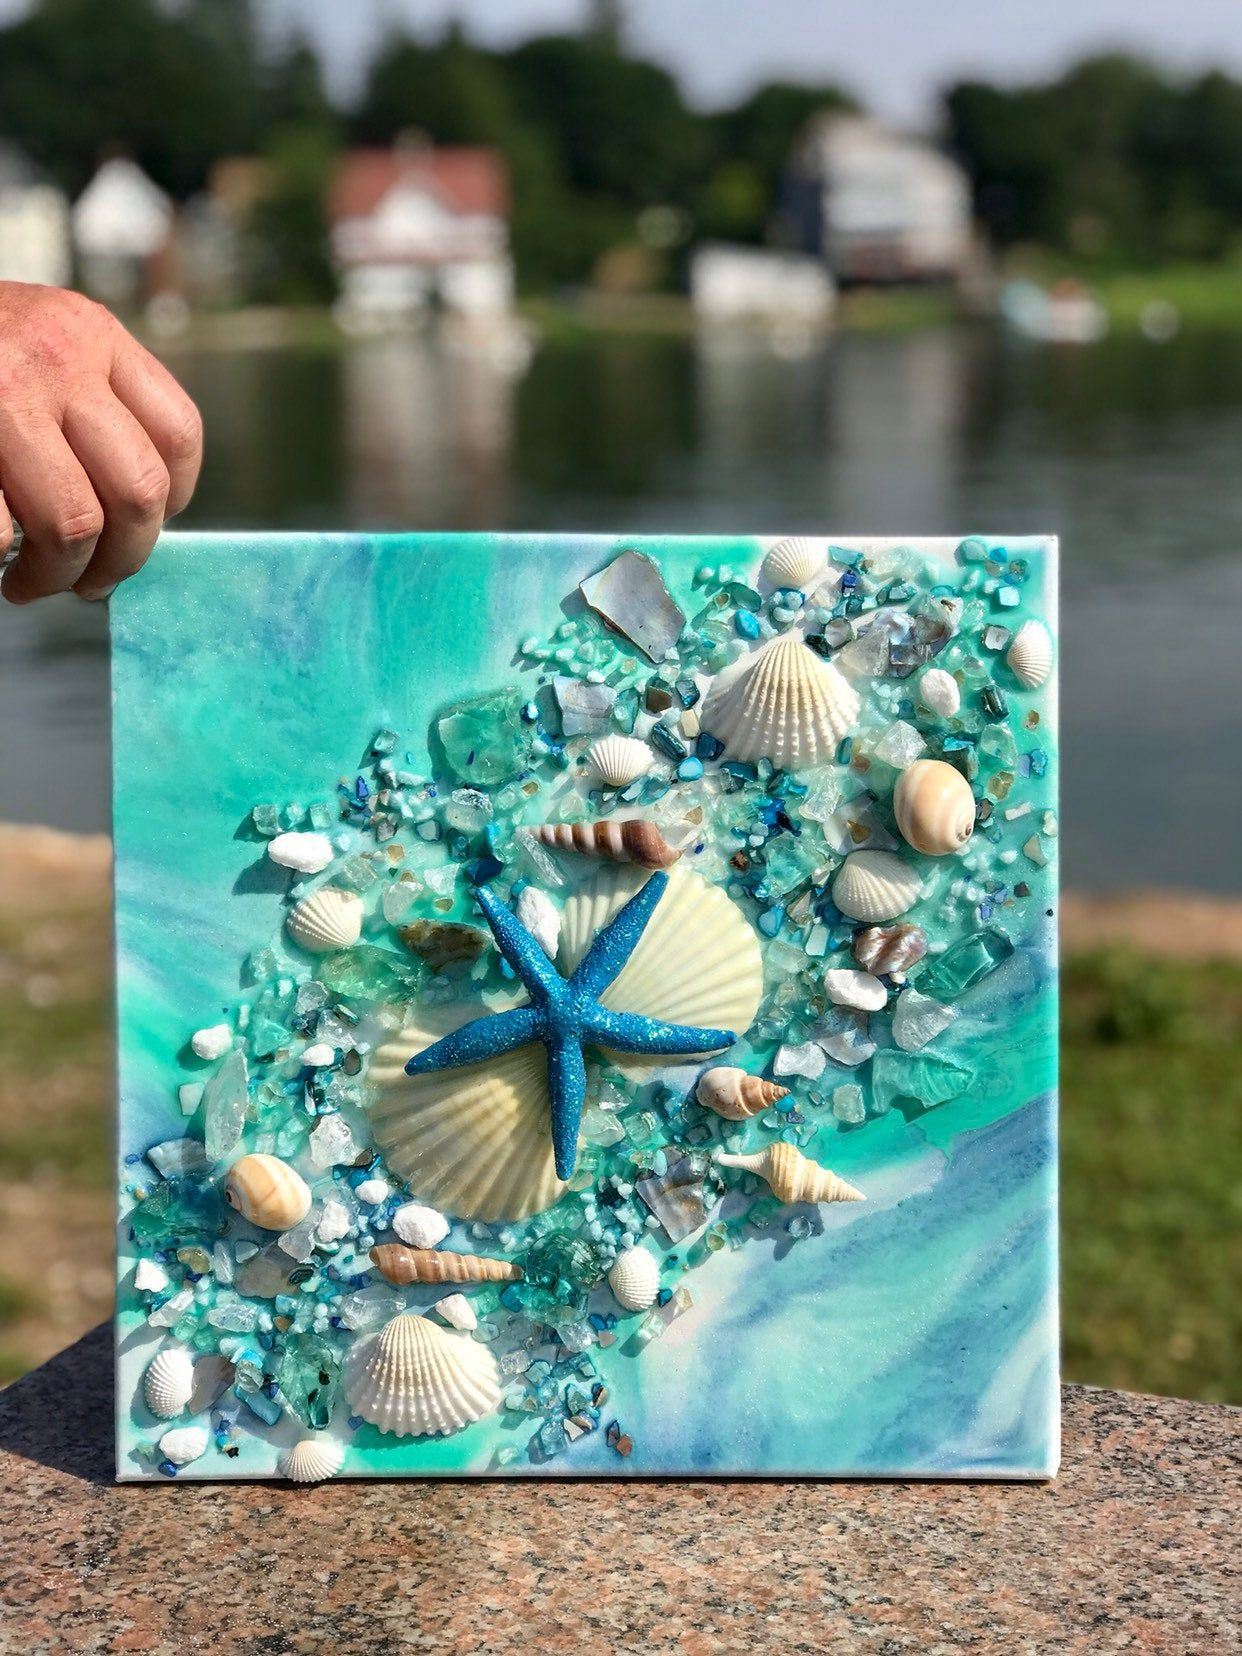 Free Shipping 12x12 Resin Geode Canvas With Beach Glass Image 5